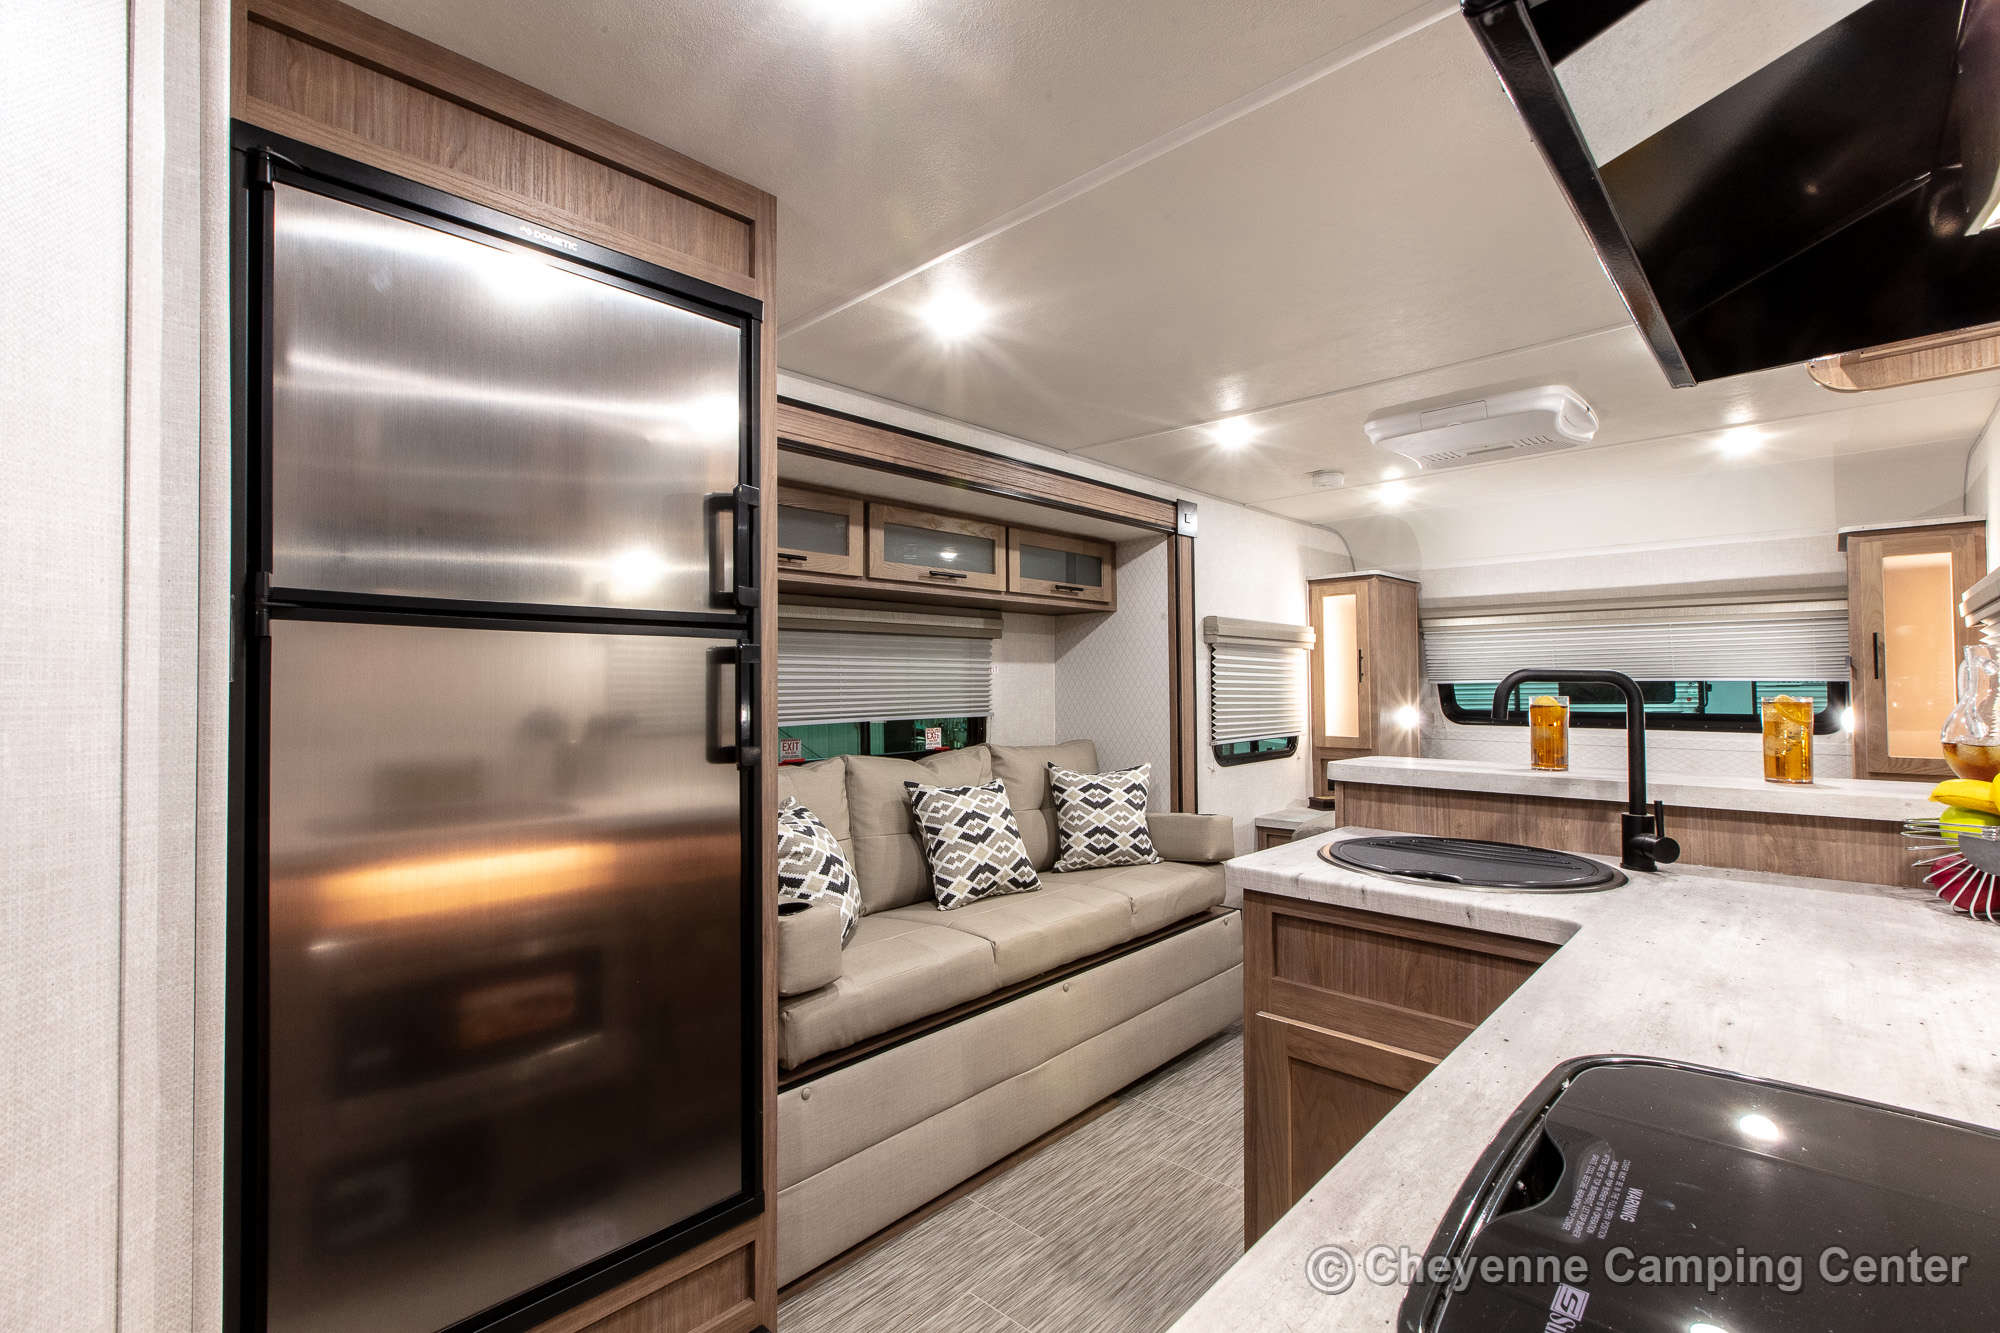 2021 Forest River No Boundaries 19.6 Travel Trailer Interior Image